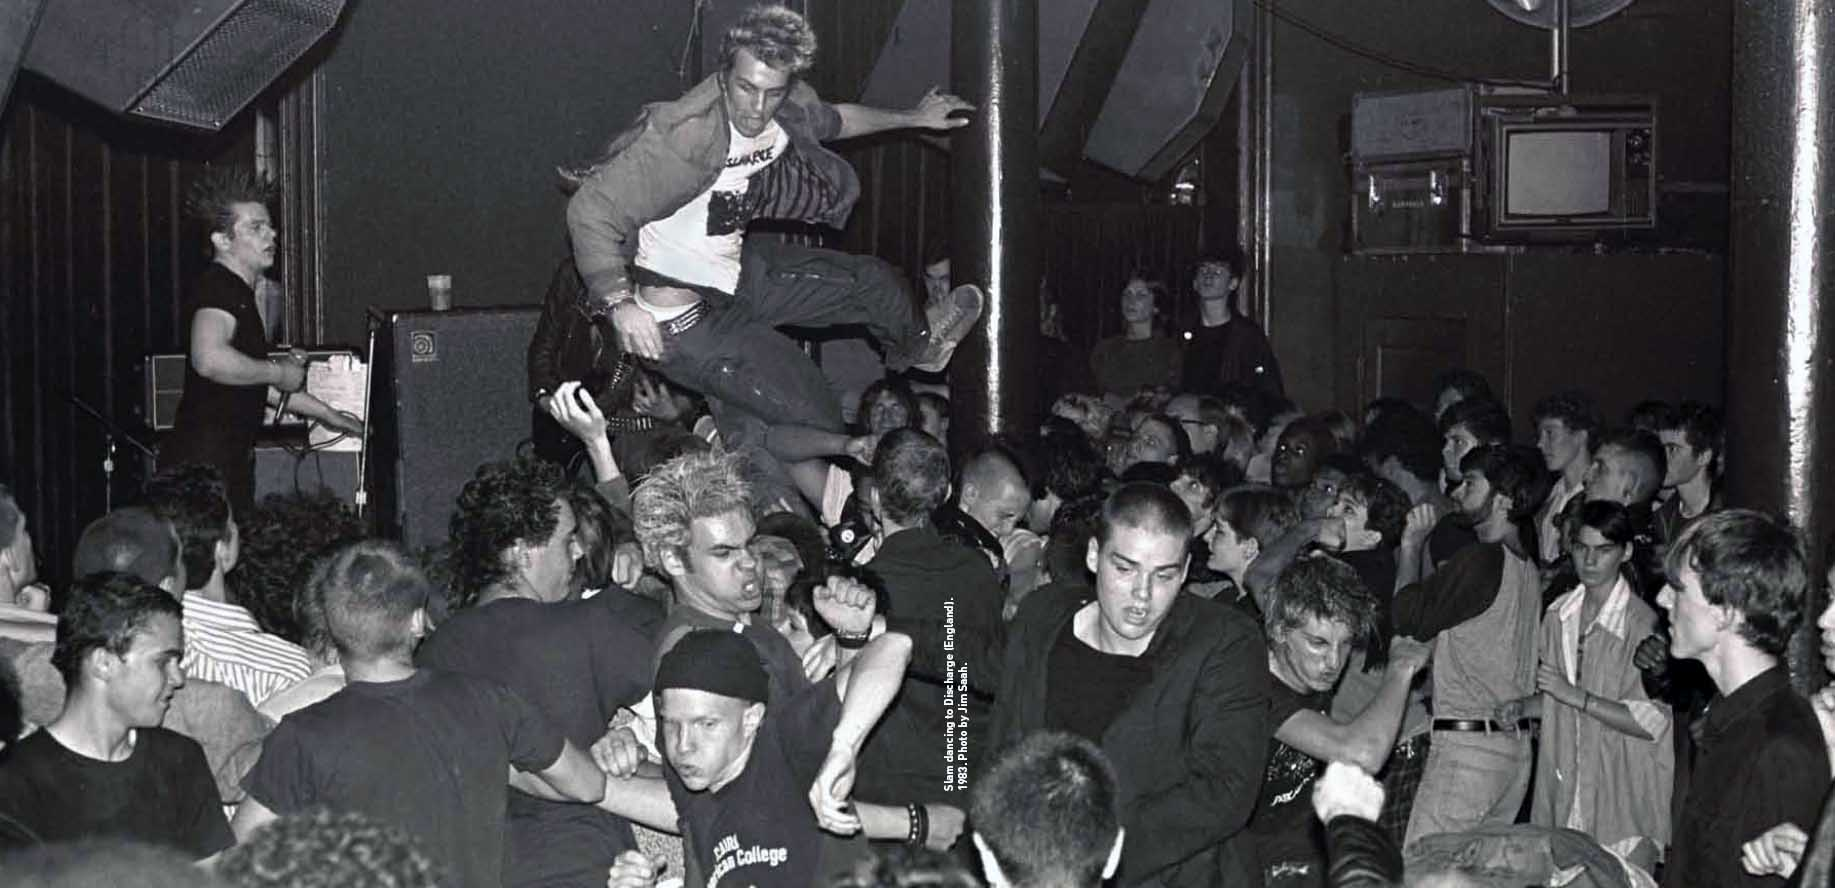 The crowd slam-dances to Discharge in 1983 at the old 9:30 Club. Photo by Jim Saah